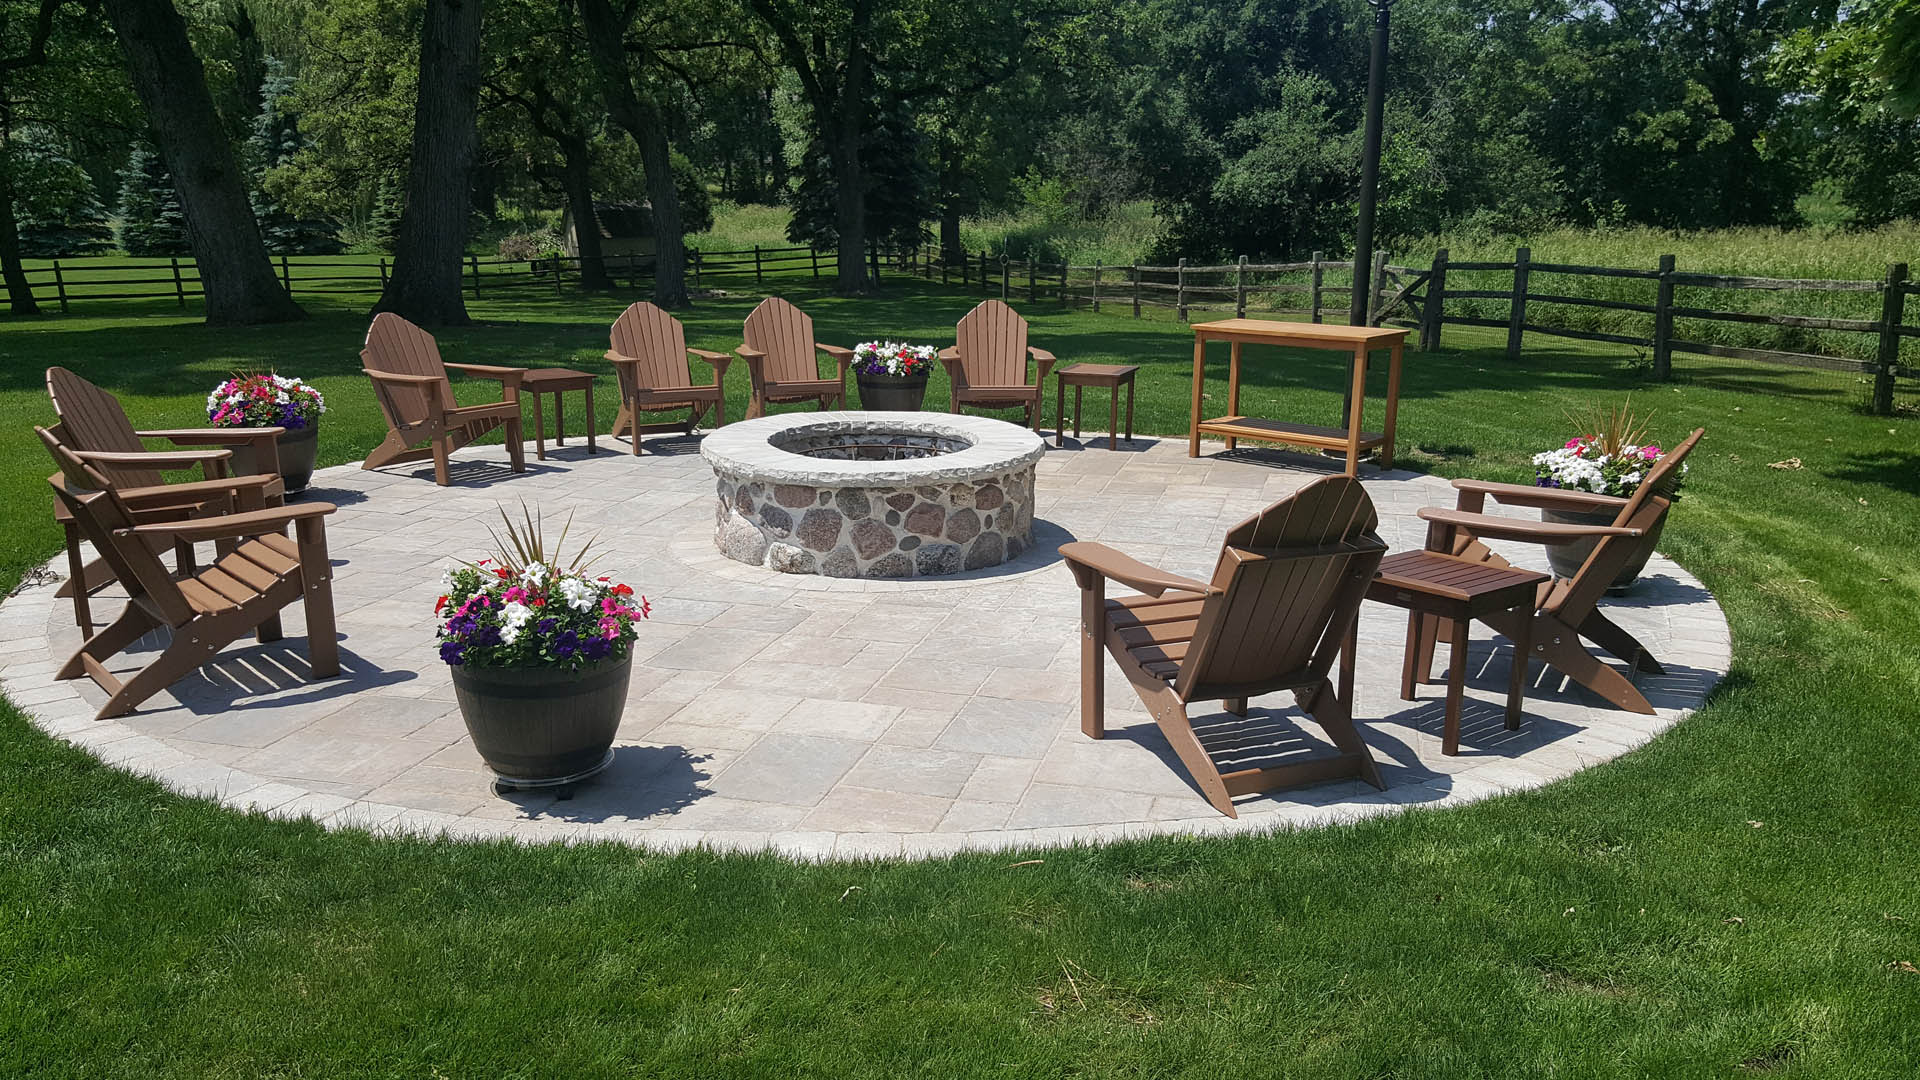 Schollmeyer Landscaping, Inc. Landscaping, Paving and Patios slide 1